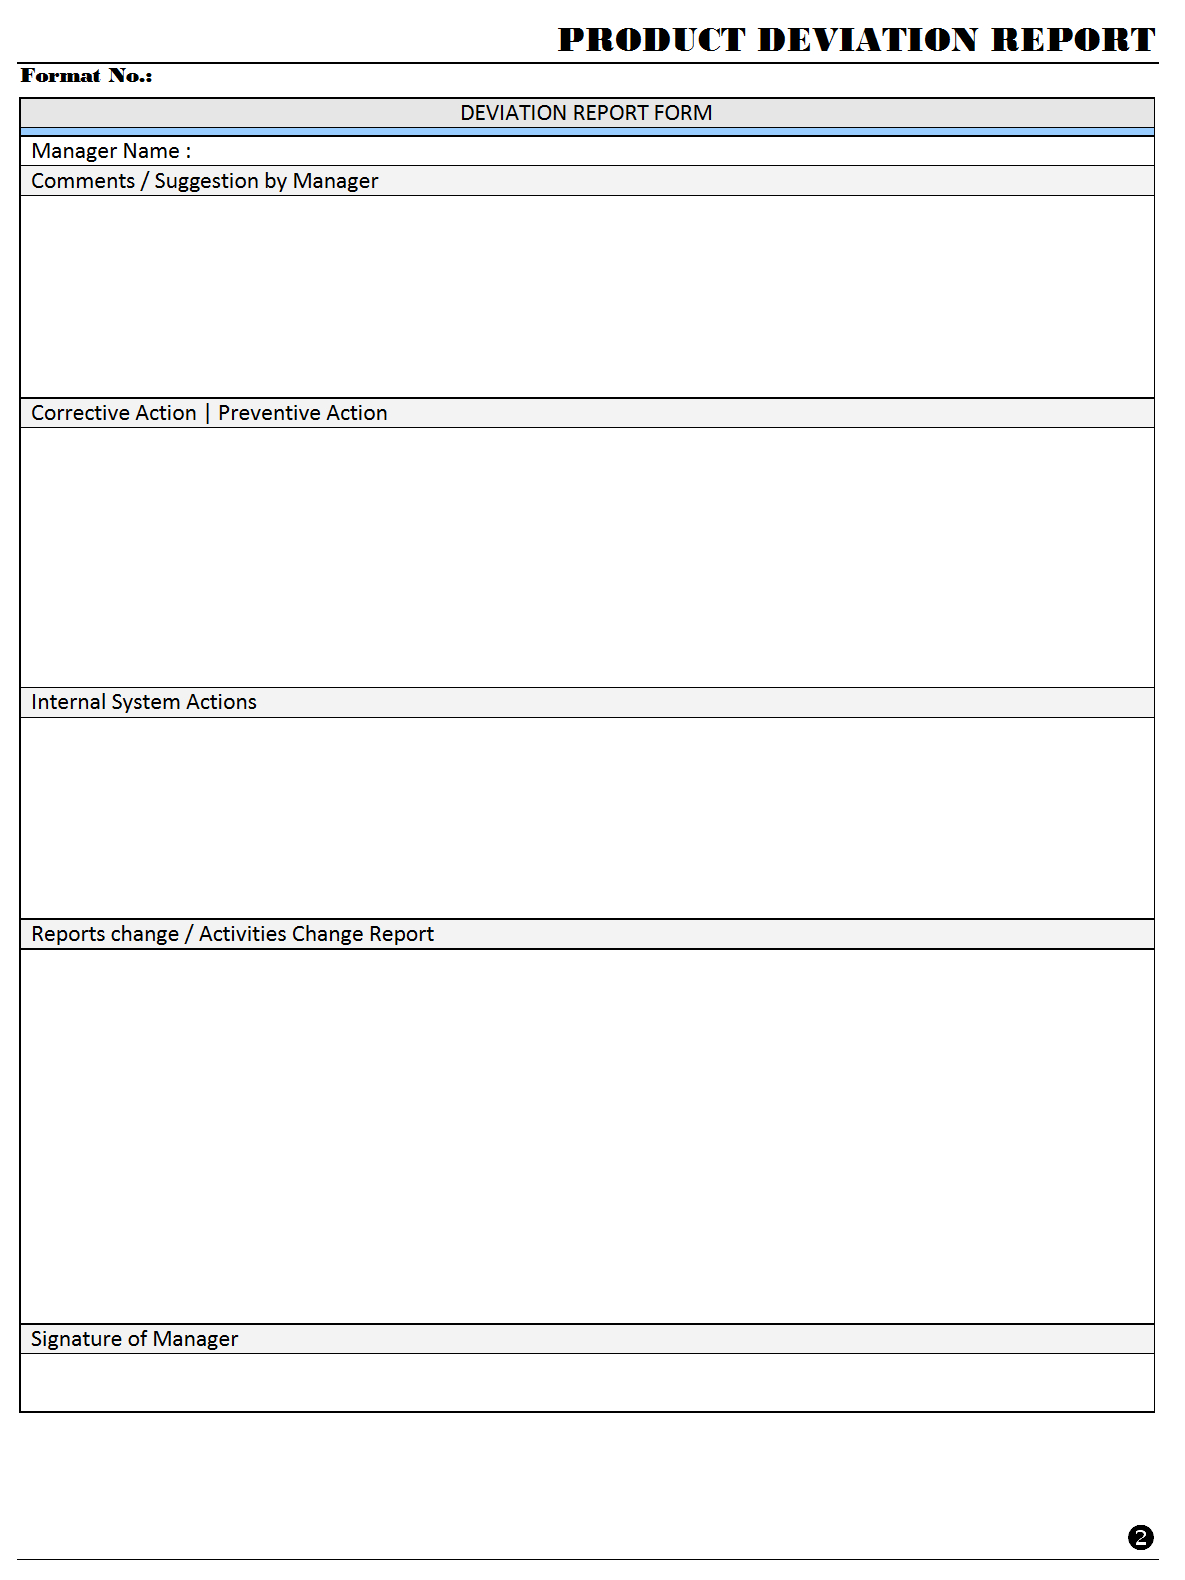 Product Deviation Report Format | Samples | Excel Document With Deviation Report Template